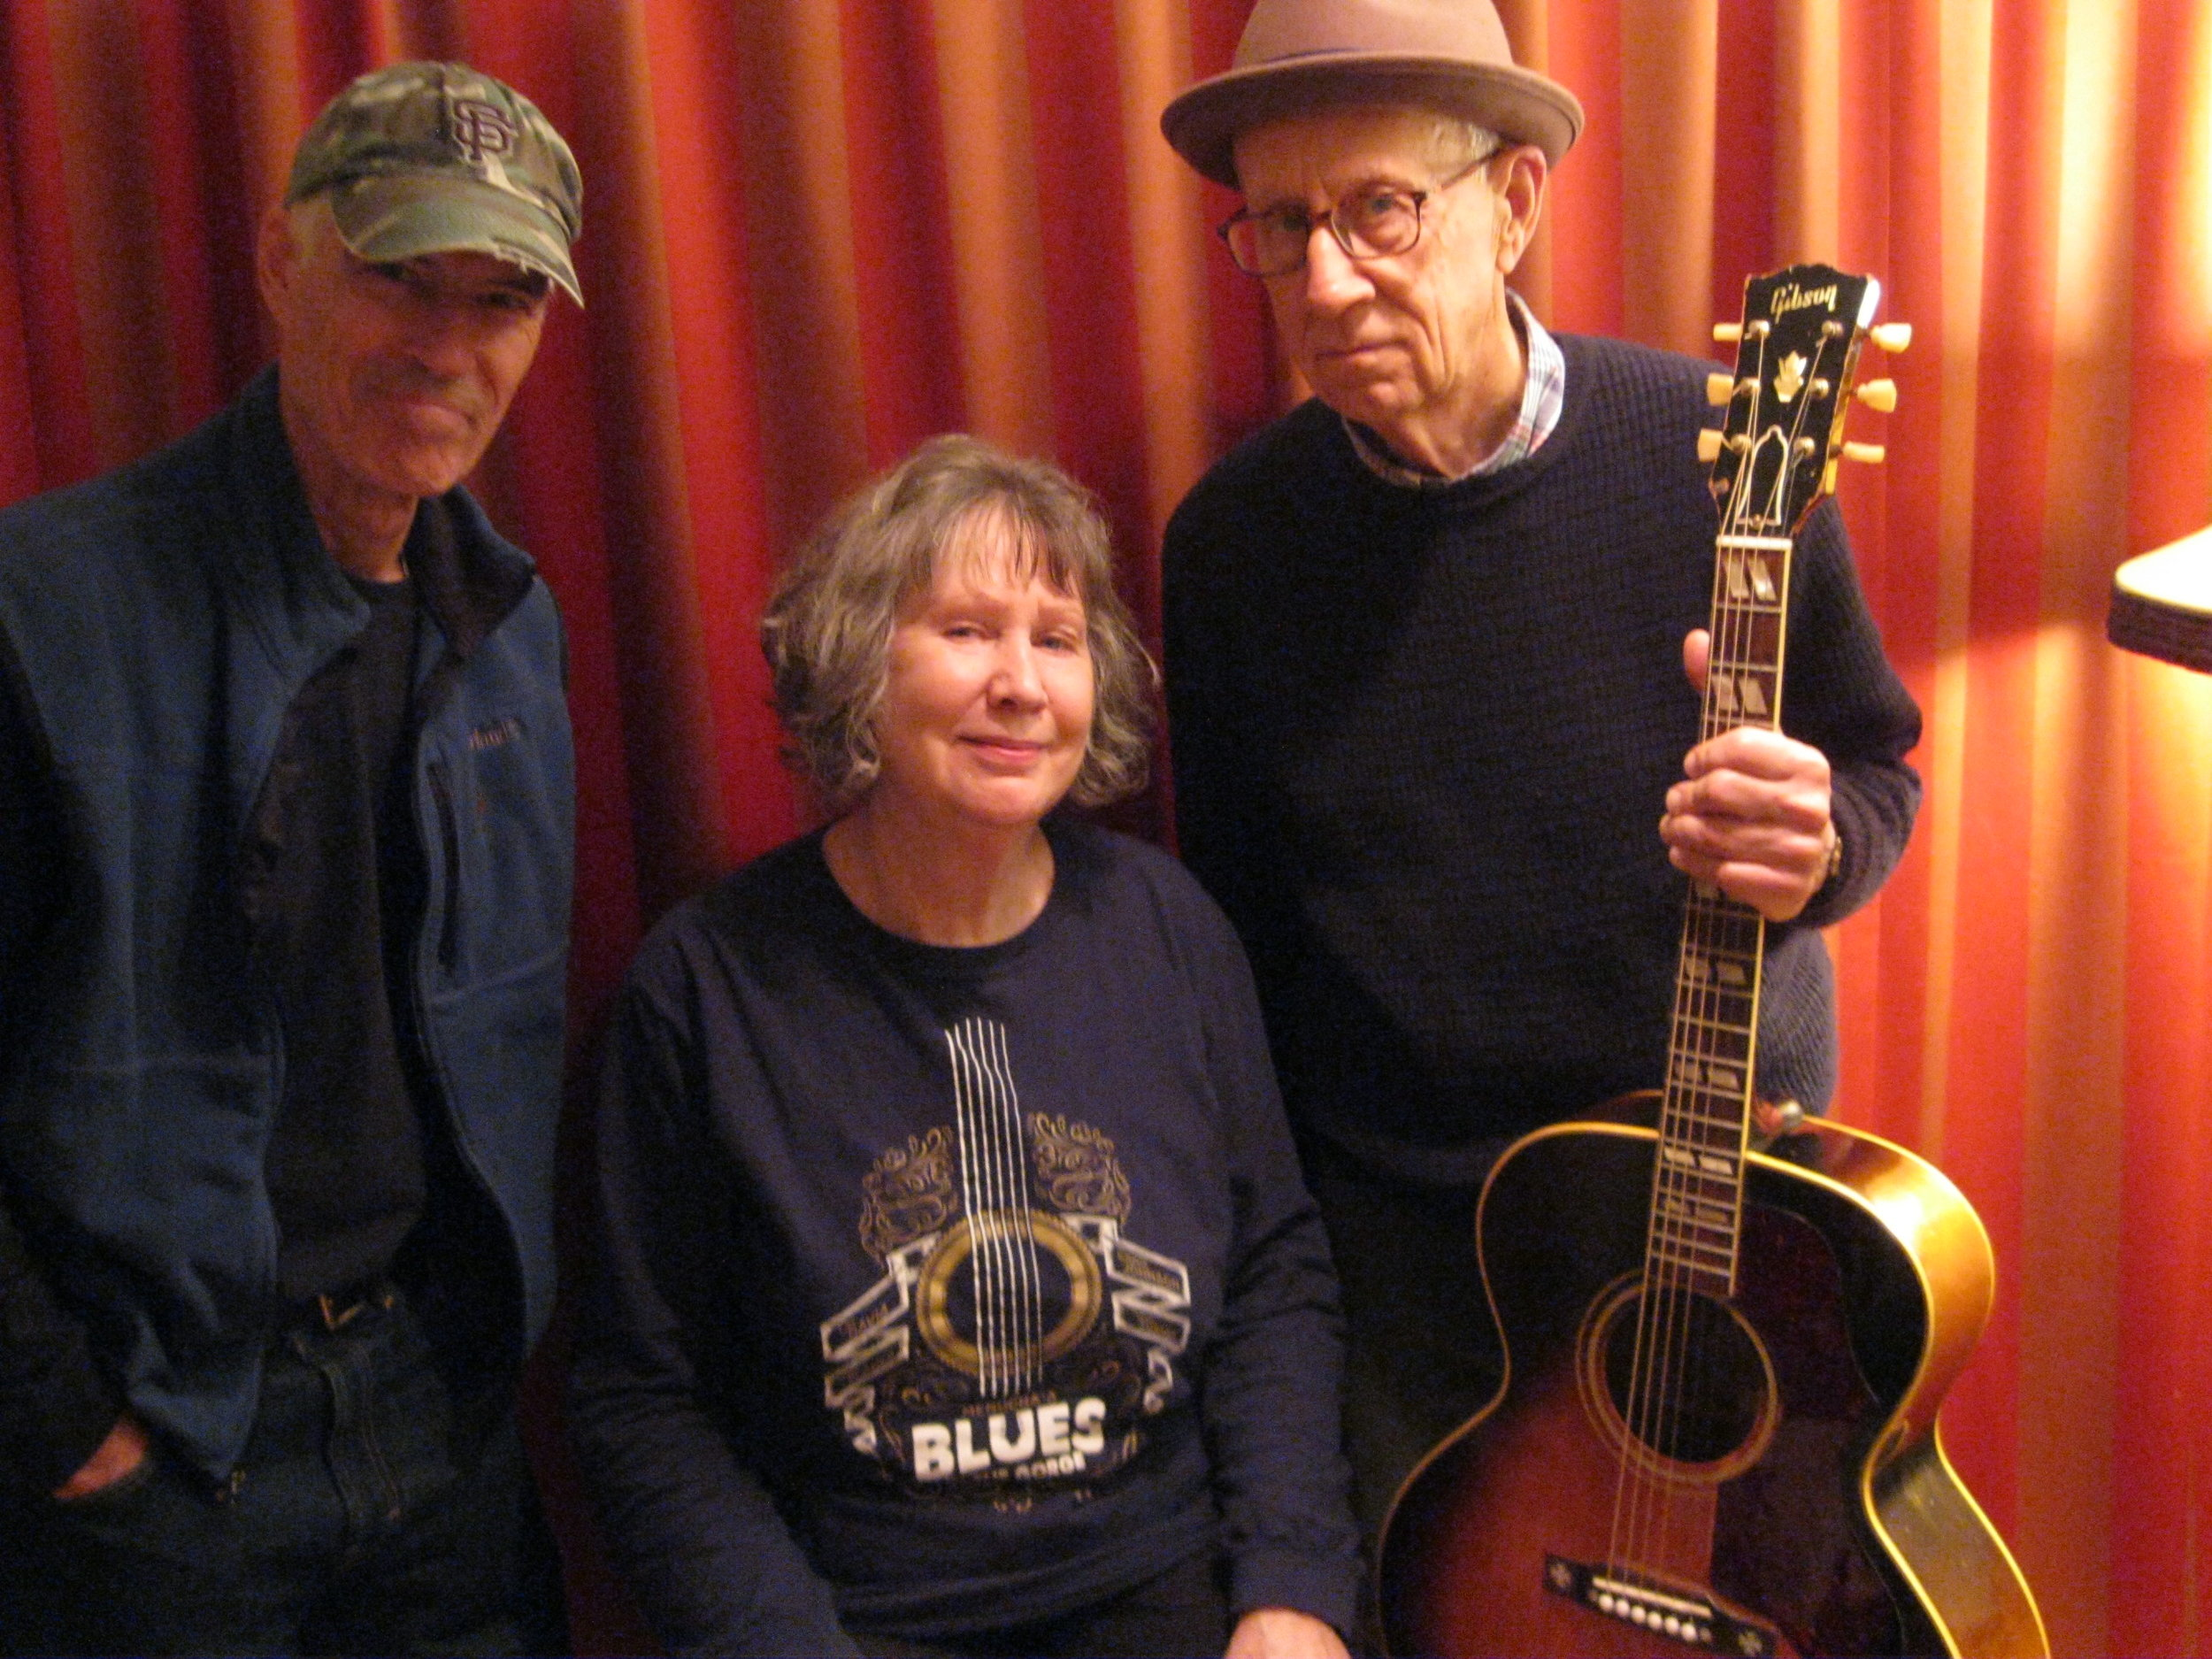 Craig Snazelle, Mary Flower and James Clem. February, 2018 recording session in Portland, Oregon.